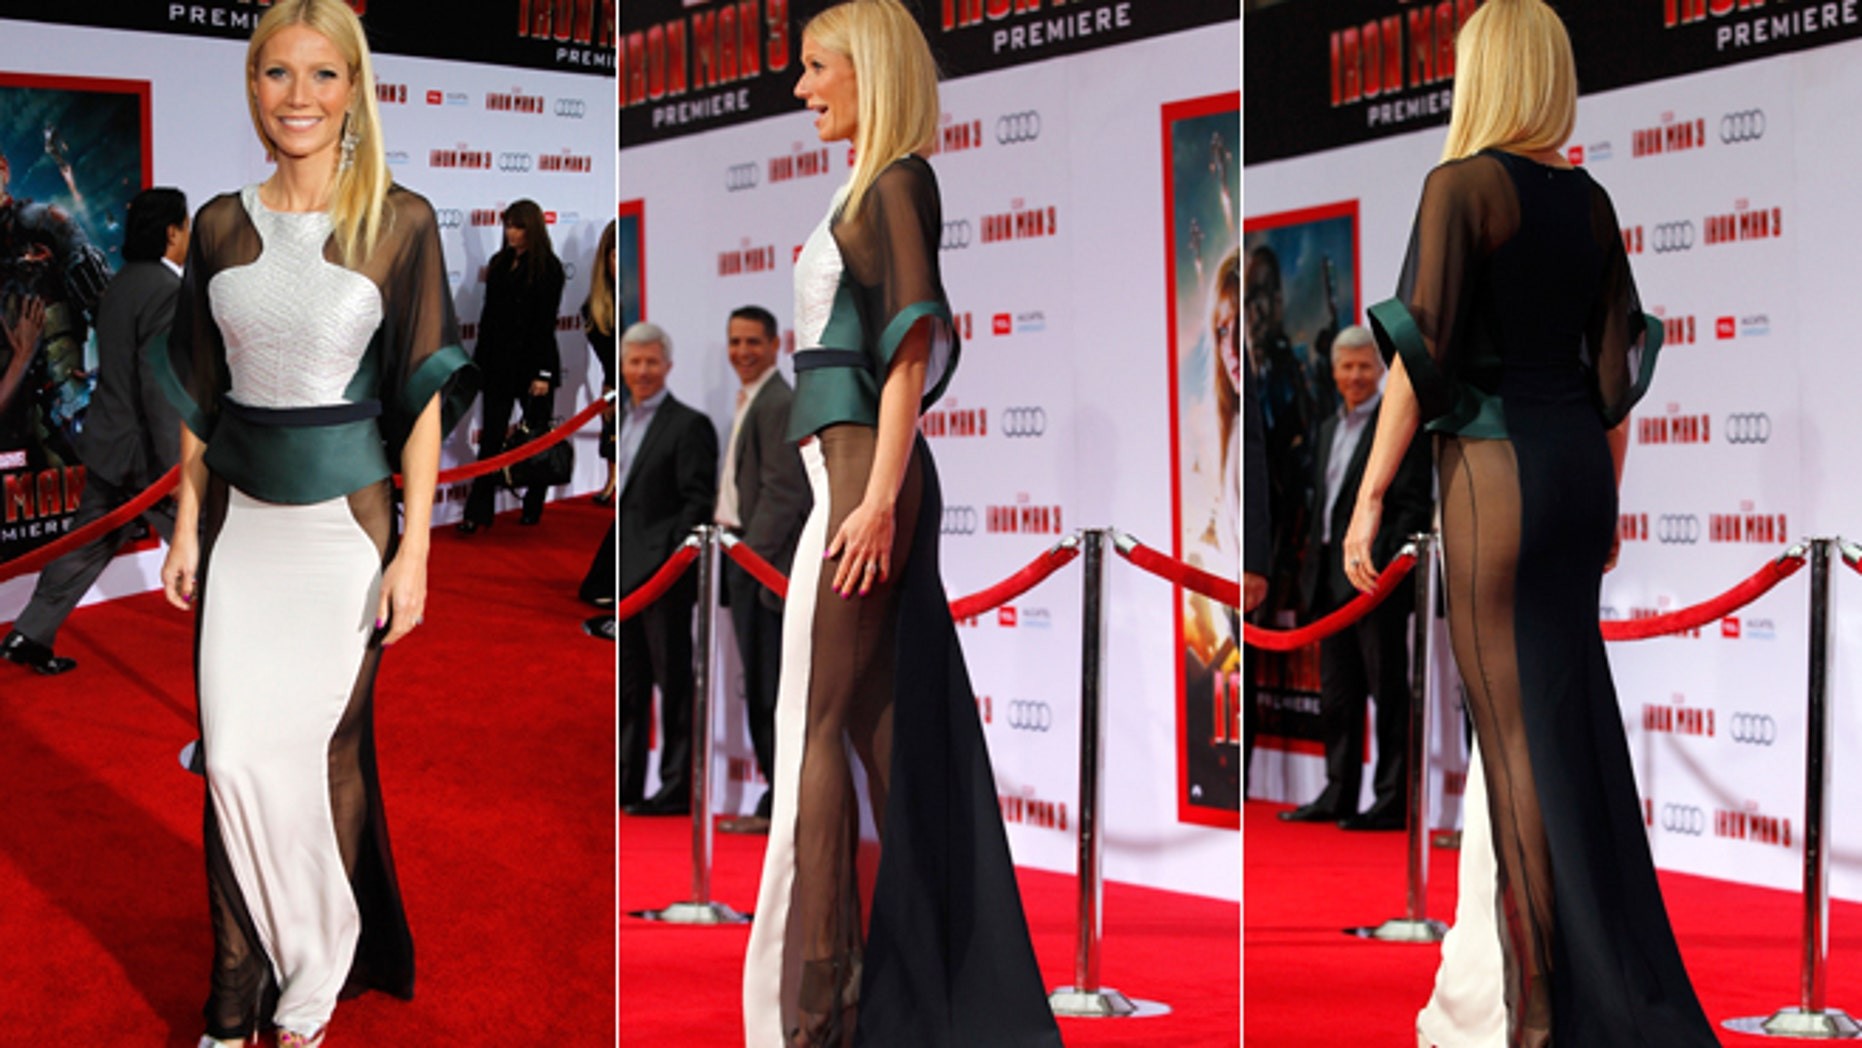 """Cast member Gwyneth Paltrow poses at the premiere of """"Iron Man 3"""" at El Capitan theatre in Hollywood, California April 24, 2013."""